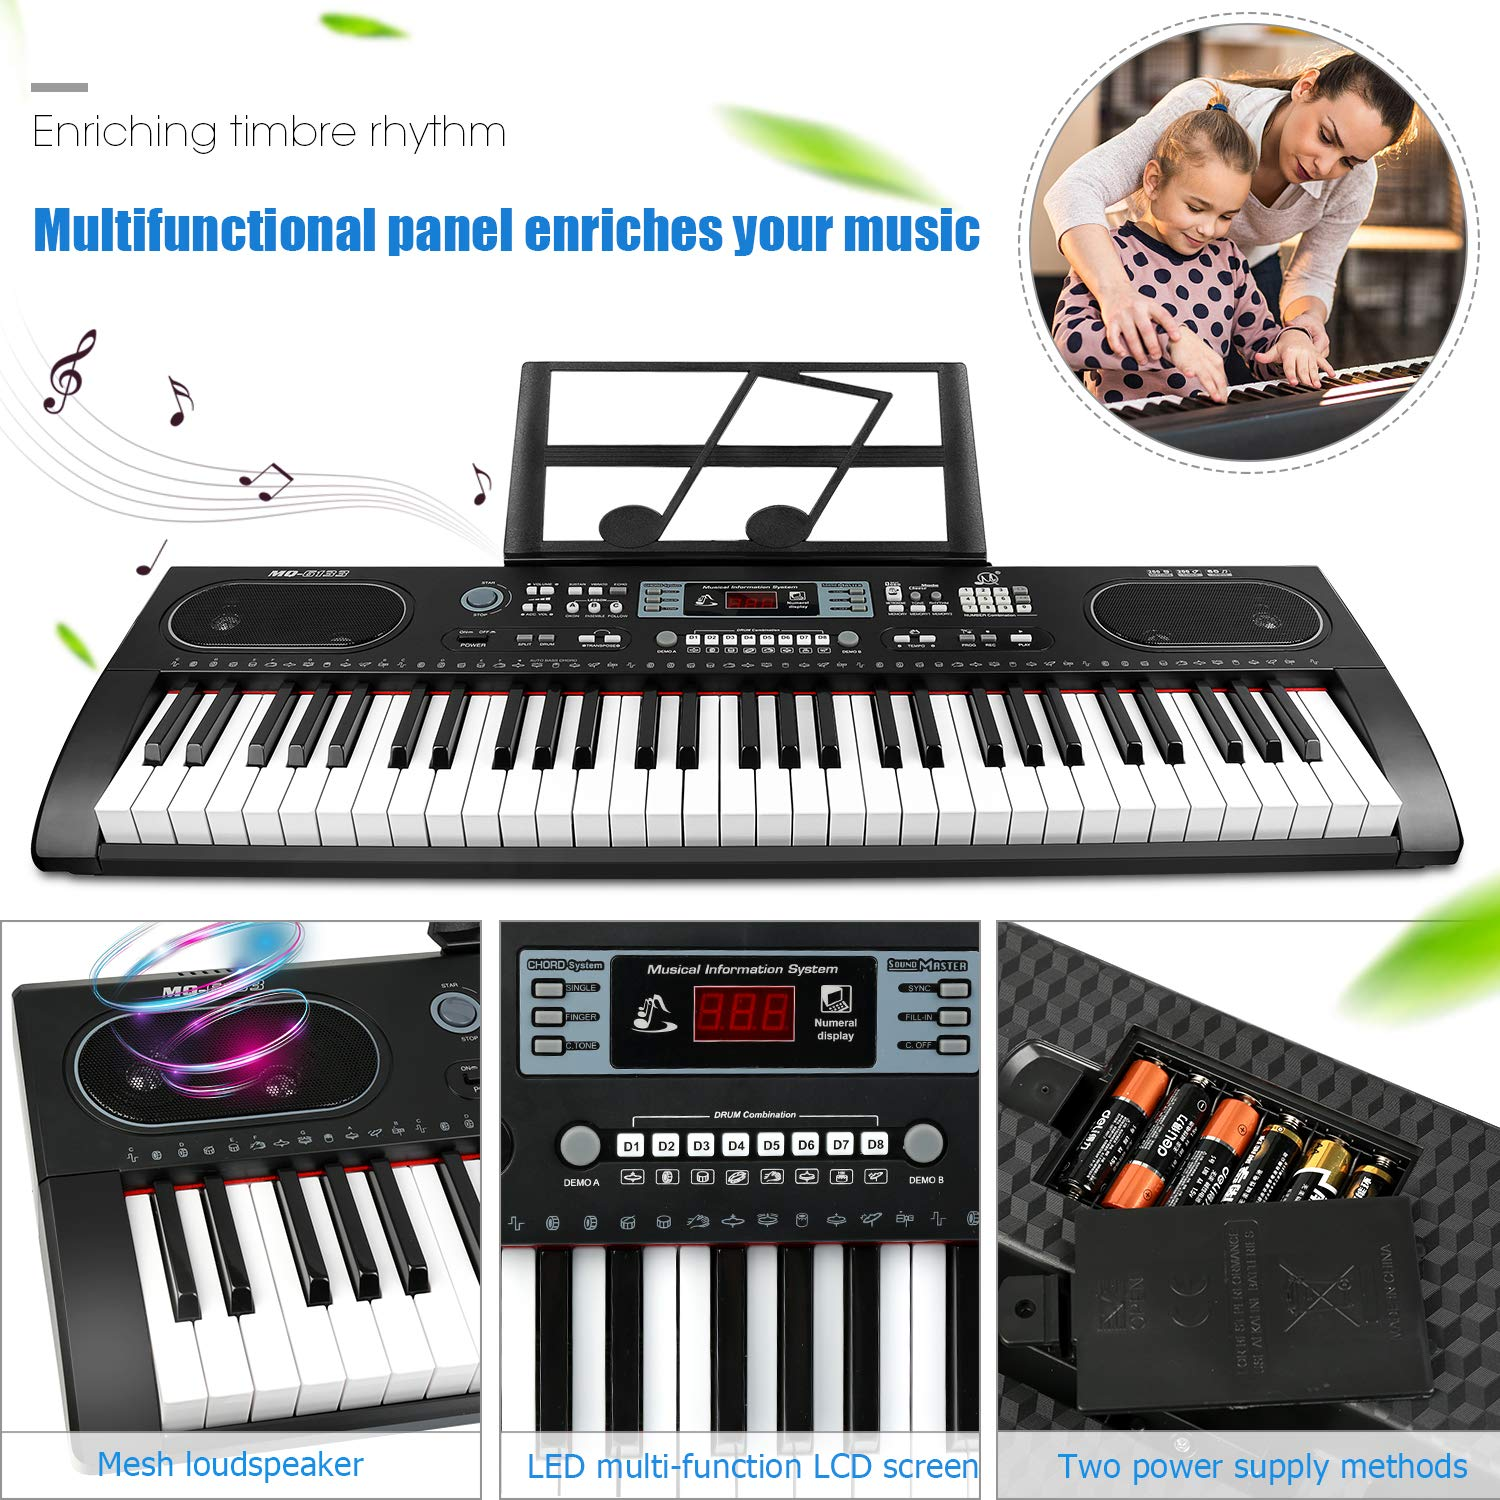 ZJTL 61-Key Digital Electric Piano Keyboard &Music Stand &microphone- Portable Electronic Keyboard (Kids & Adults) MQ-6133 by ZJTL (Image #7)